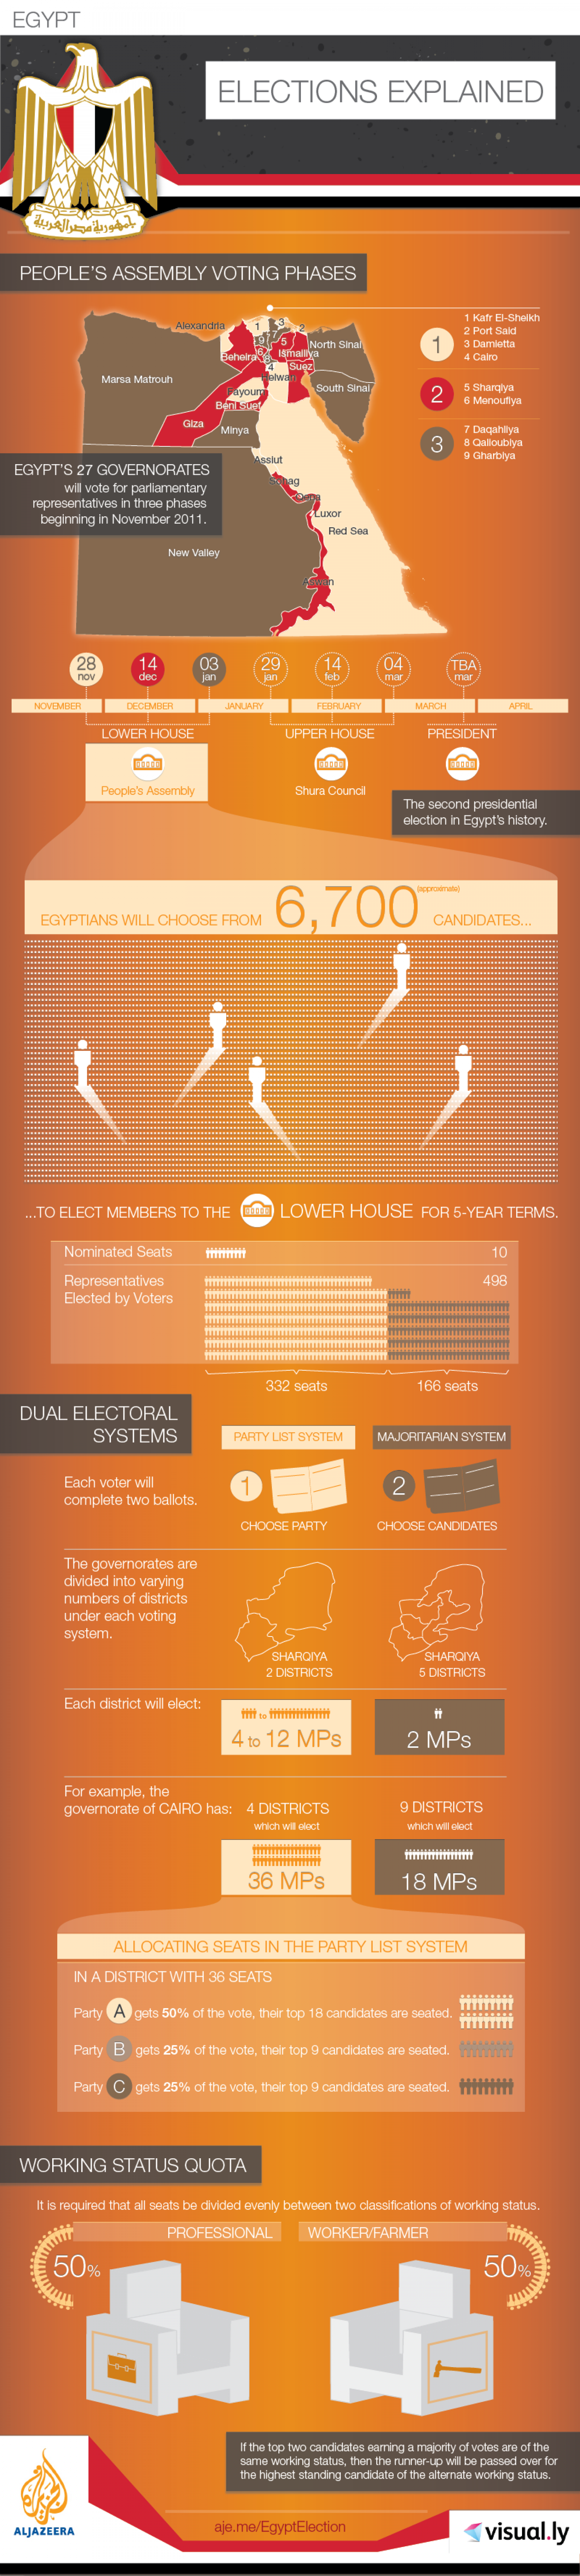 Egyptian Elections Explained Infographic